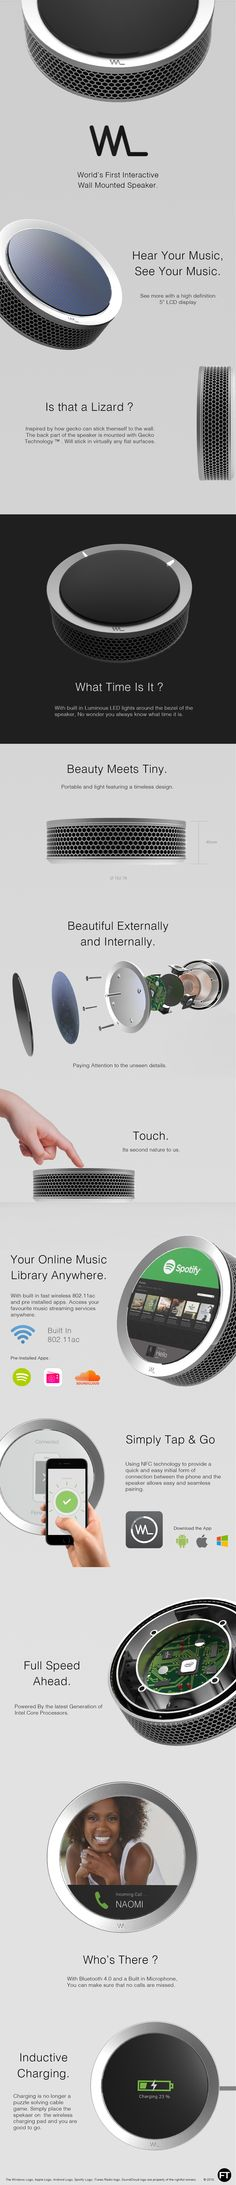 Industrial Design Project of a Wall mounted Speaker